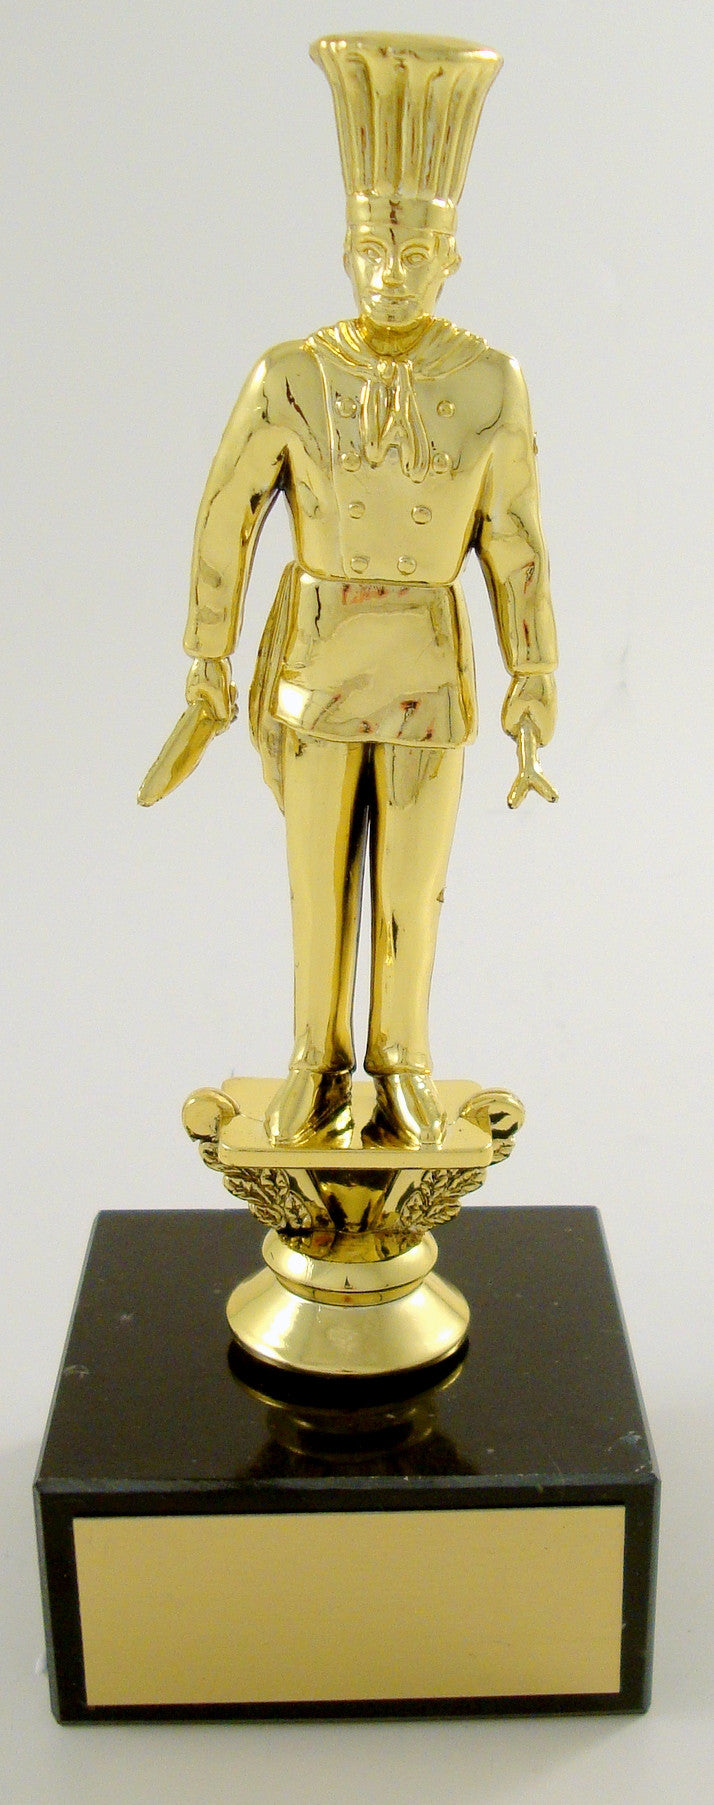 Chef Trophy Figure on Black Marble base-Trophies-Schoppy's Since 1921